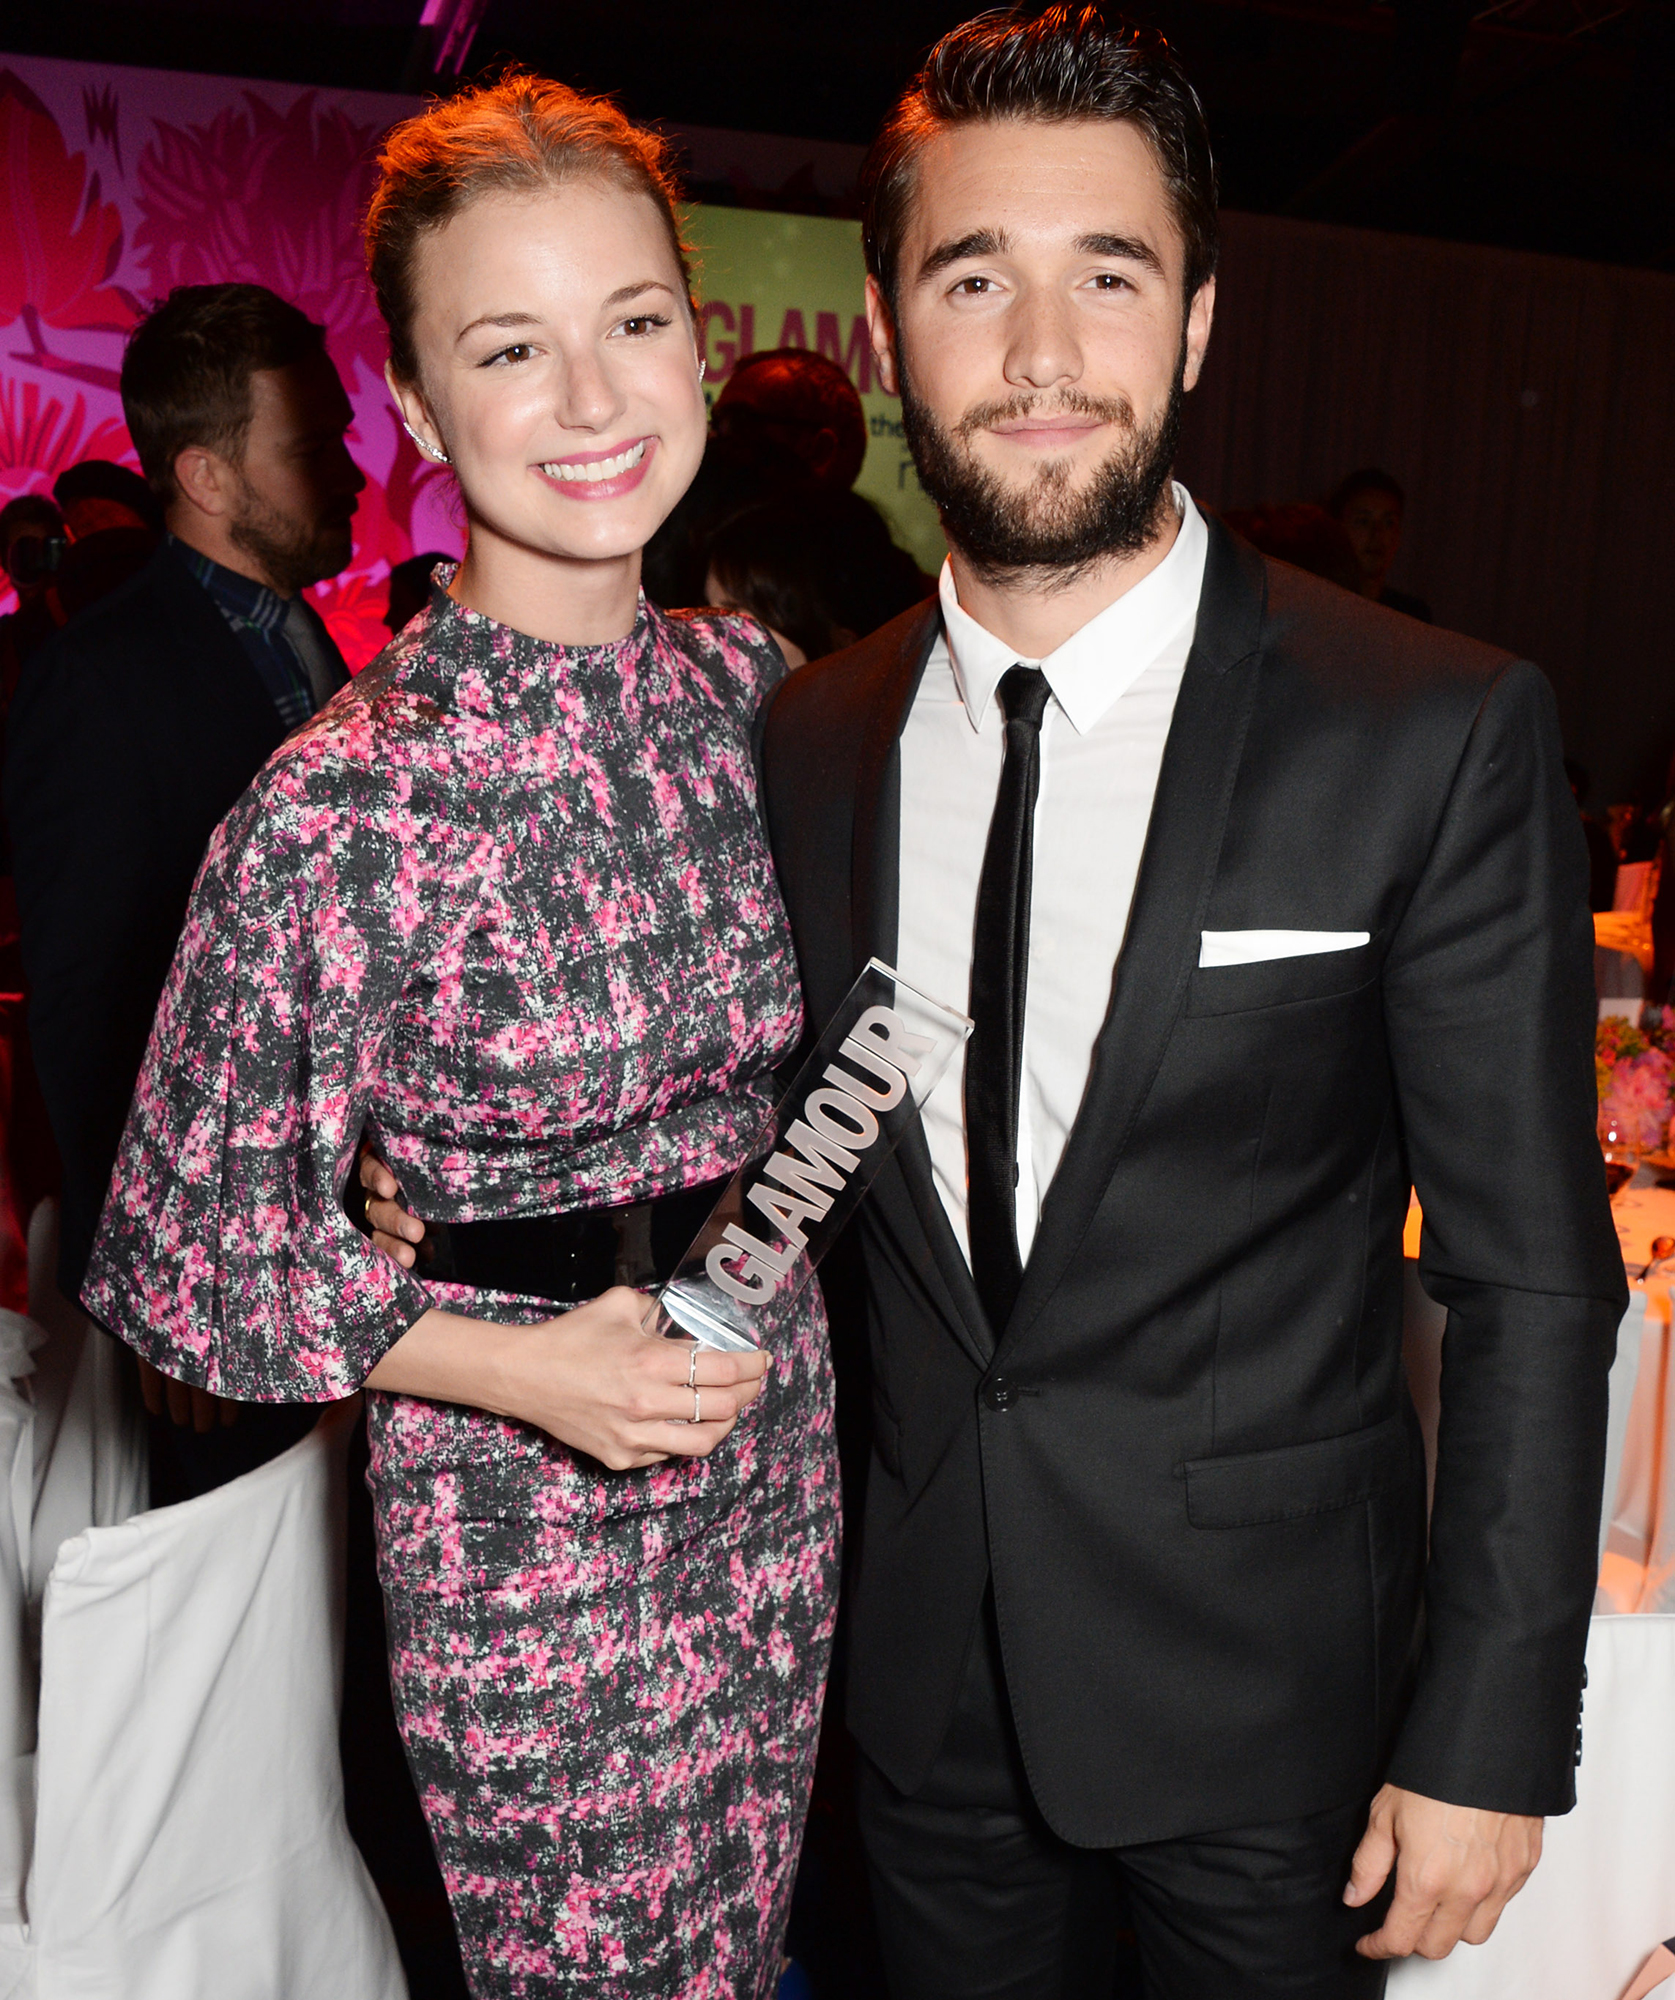 Emily VanCamp Josh Bowman Celebrate First Christmas Married Couple - Emily VanCamp and Joshua Bowman attend the Glamour Women of the Year Awards after party in Berkeley Square Gardens on June 3, 2014 in London, England.